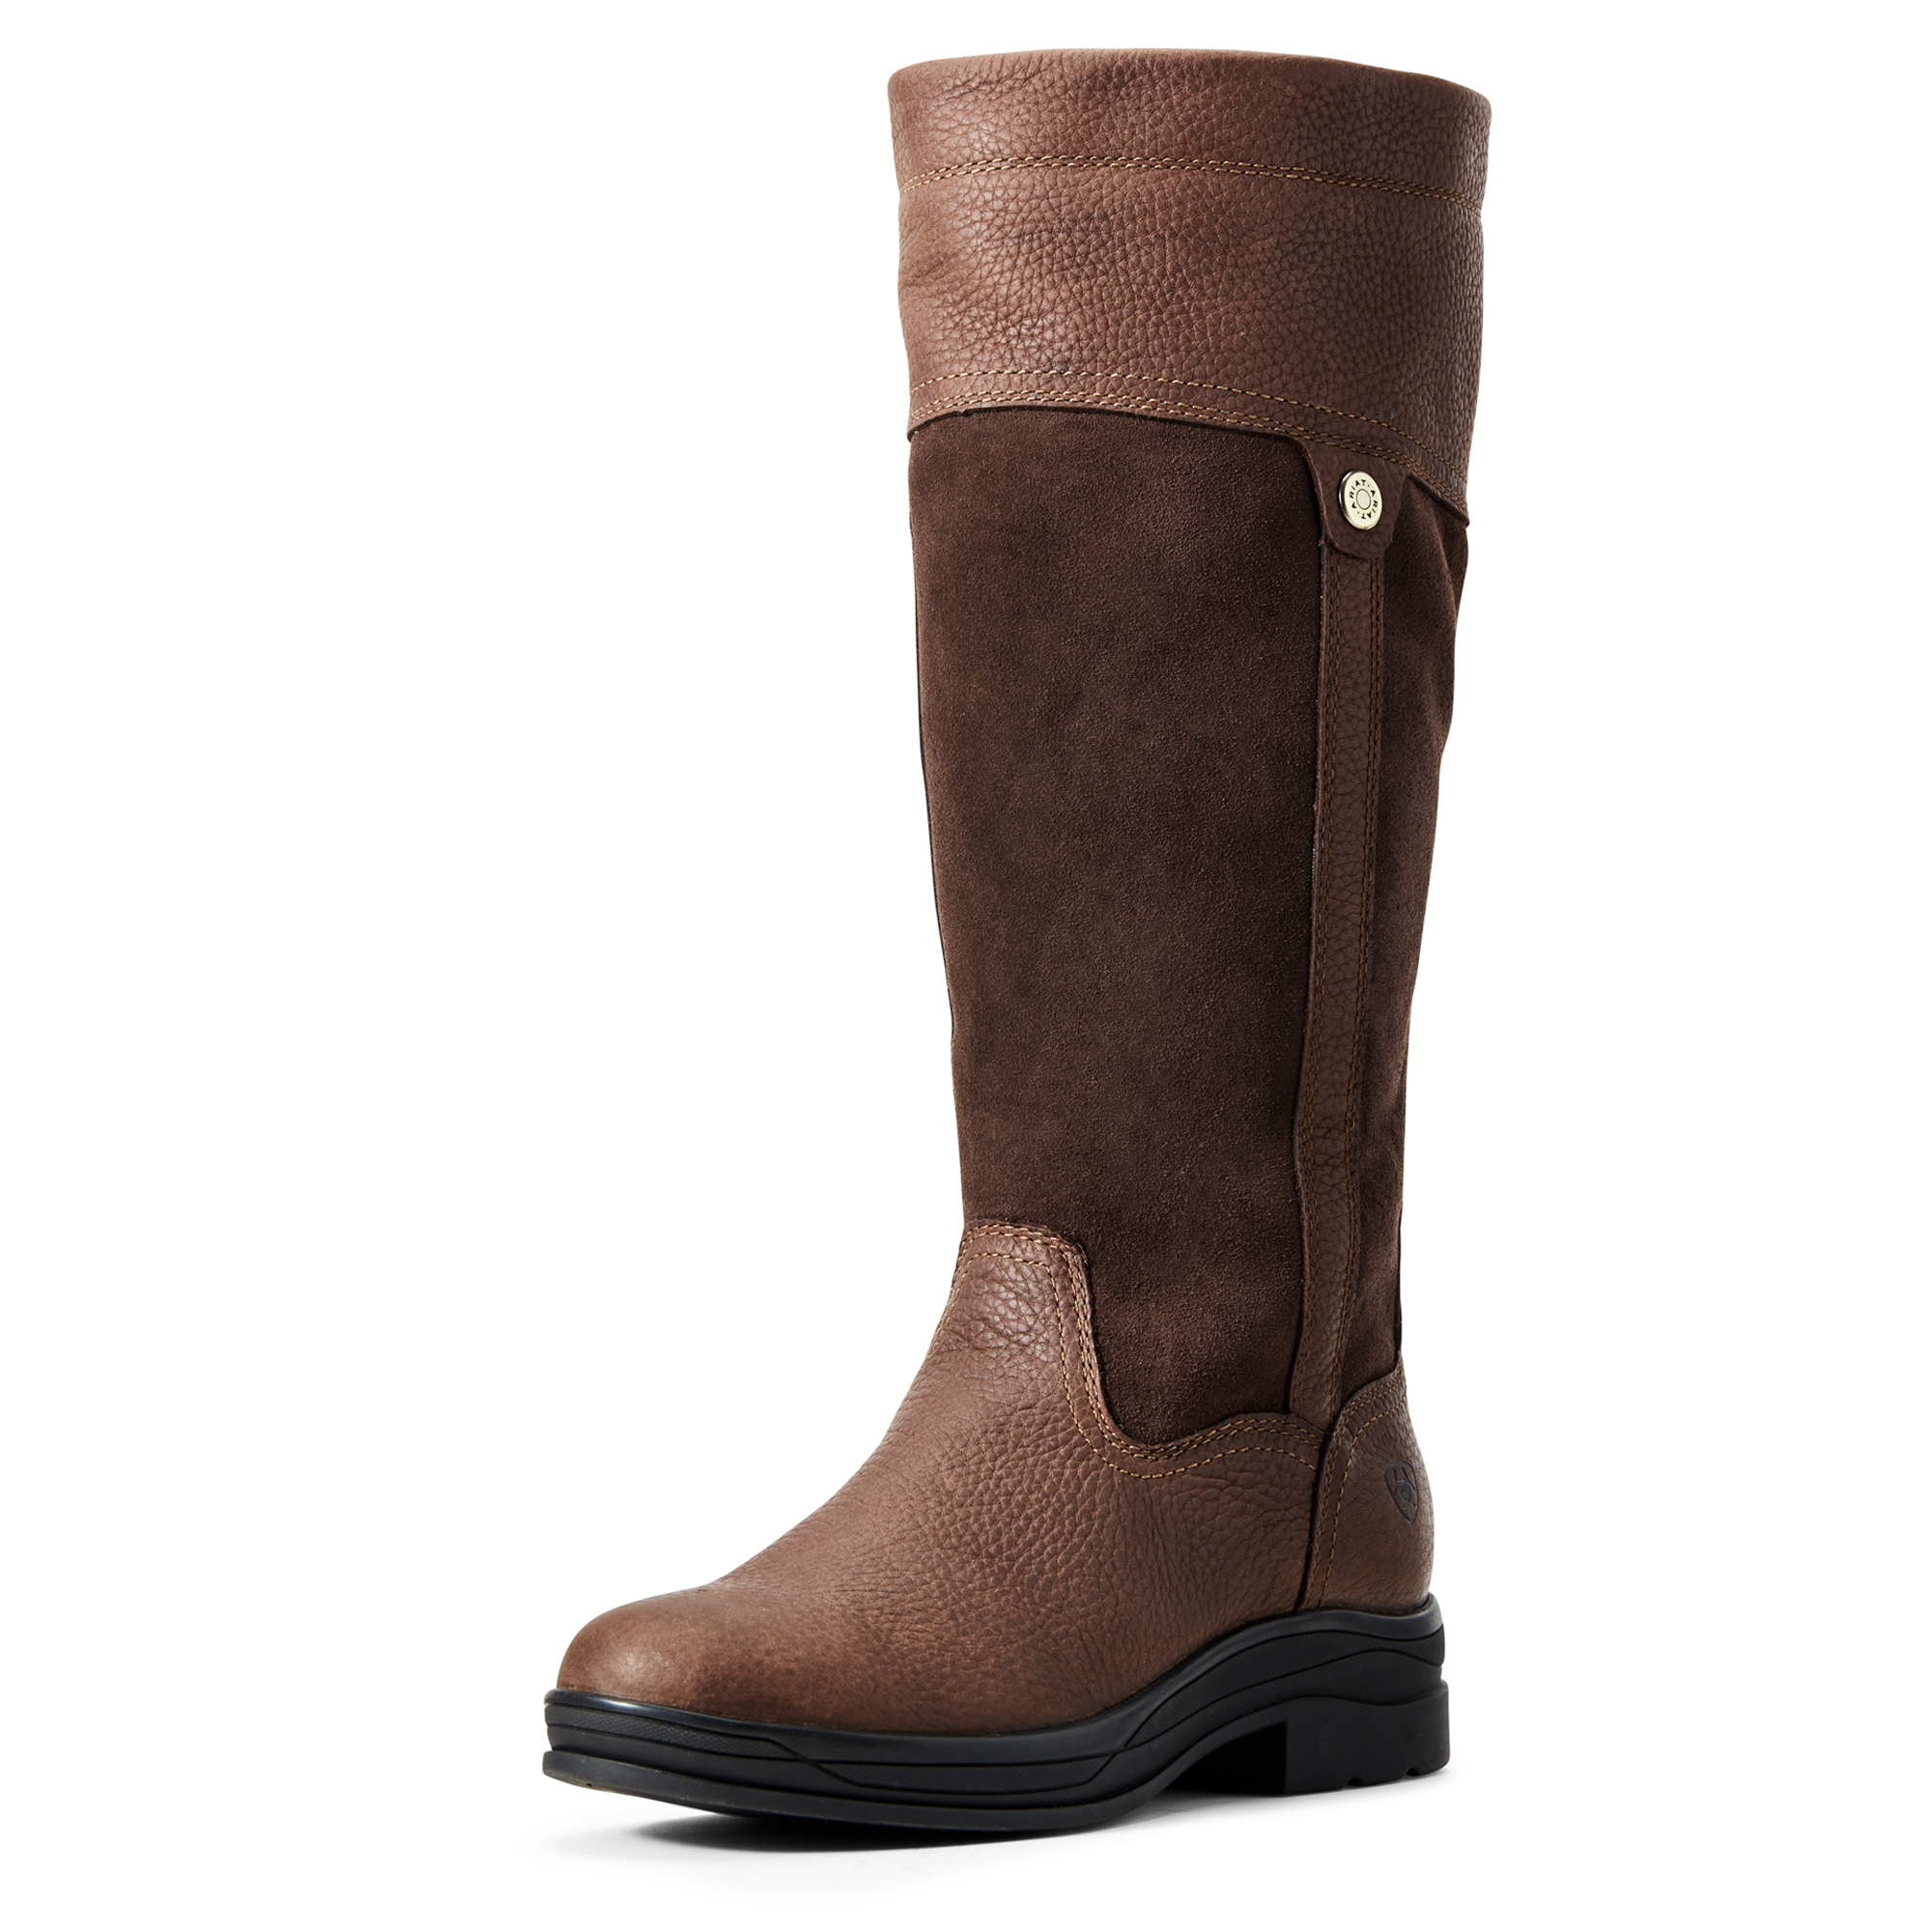 New Ariat Womens Windermere II Long Boots In Brown Various Sizes